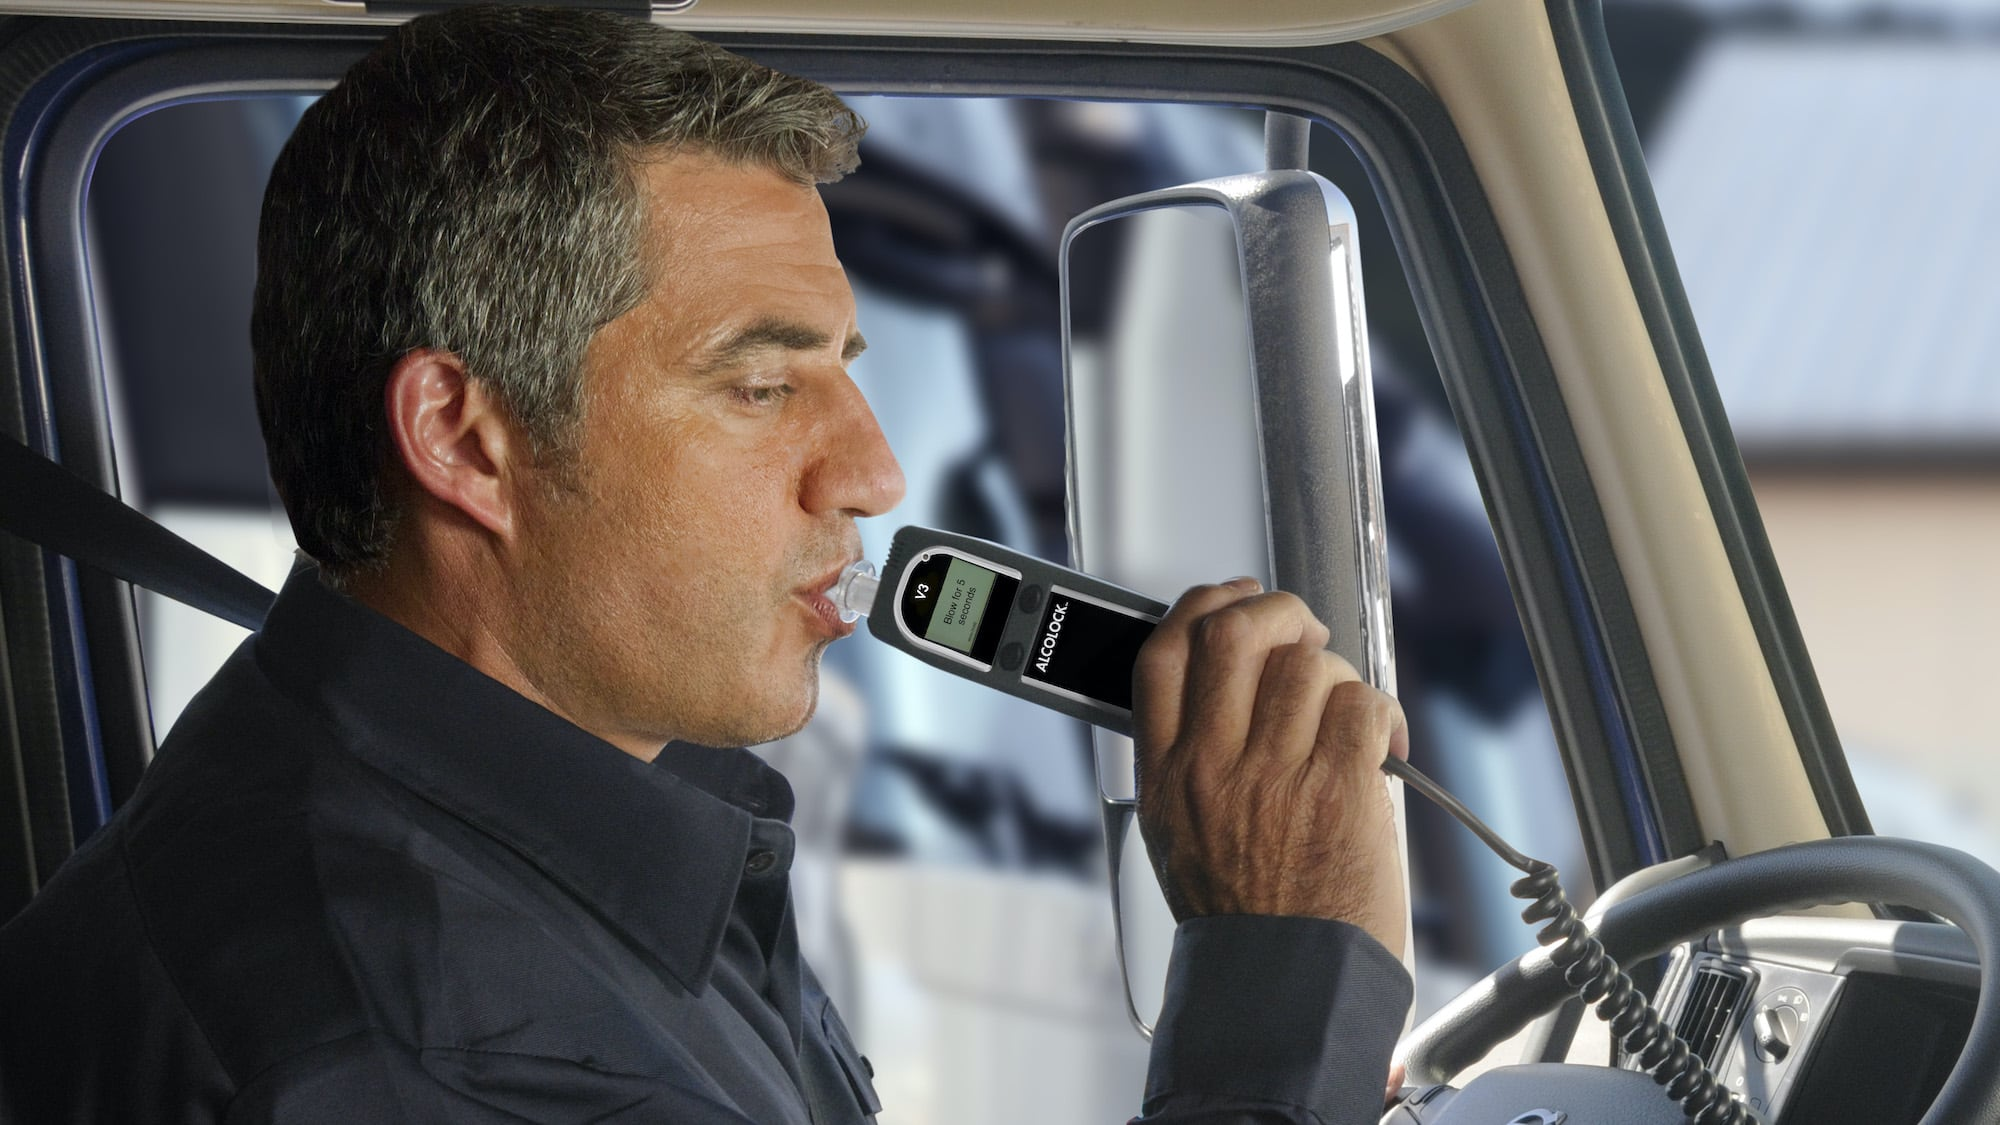 Not Your Child Ignition Interlock Device Vehicle Breathalyzer helps keep your family safe